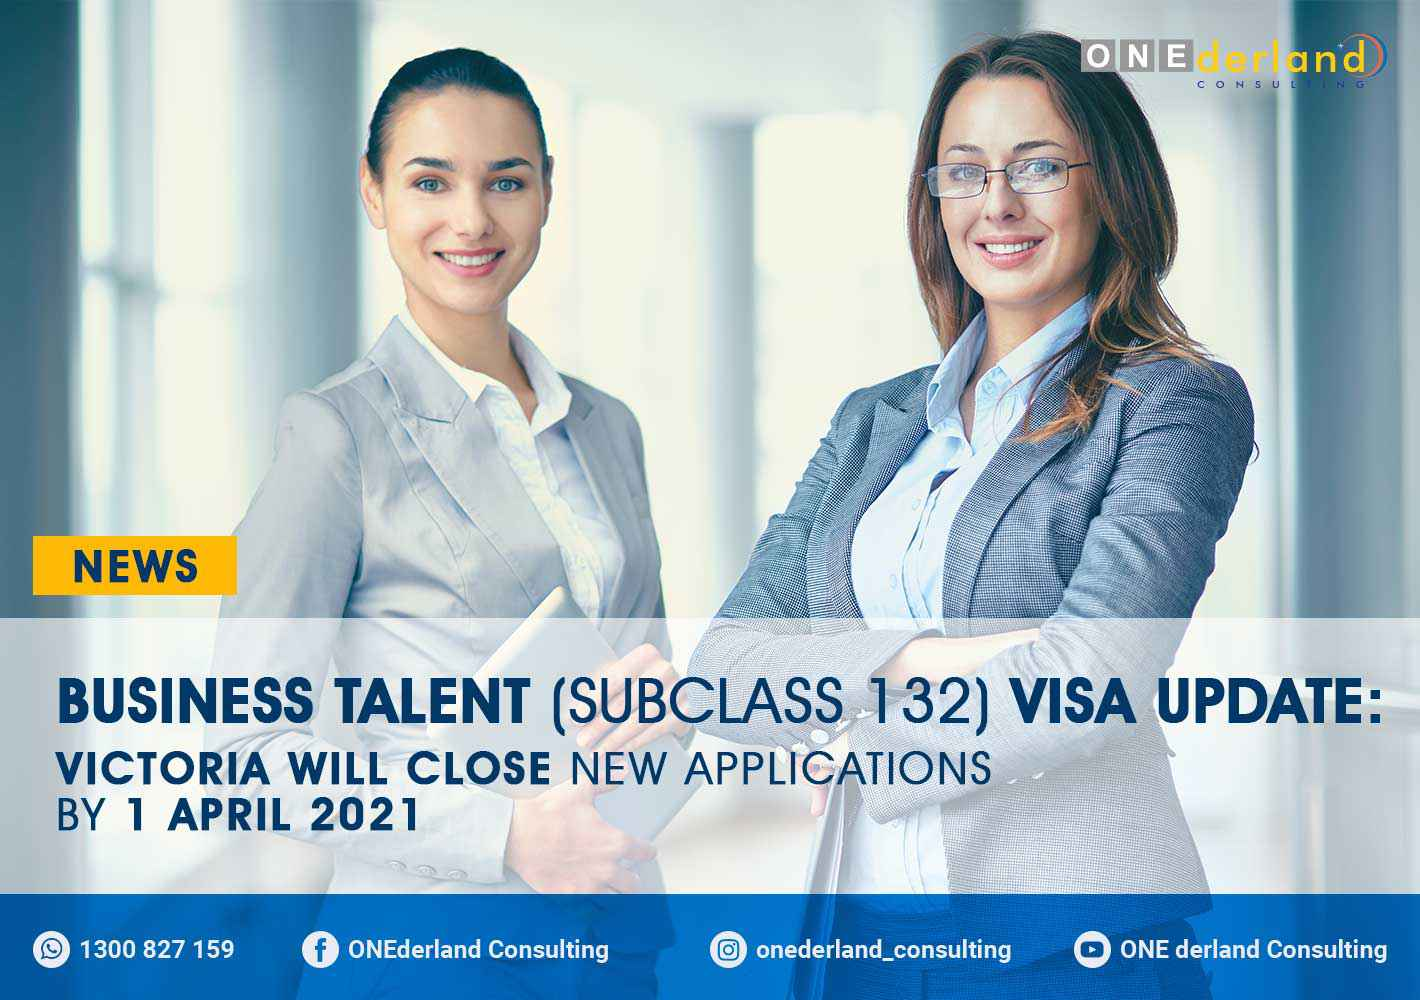 Business Talent (subclass 132) Visa Update: Victoria Will Close New Applications by 1 April 2021